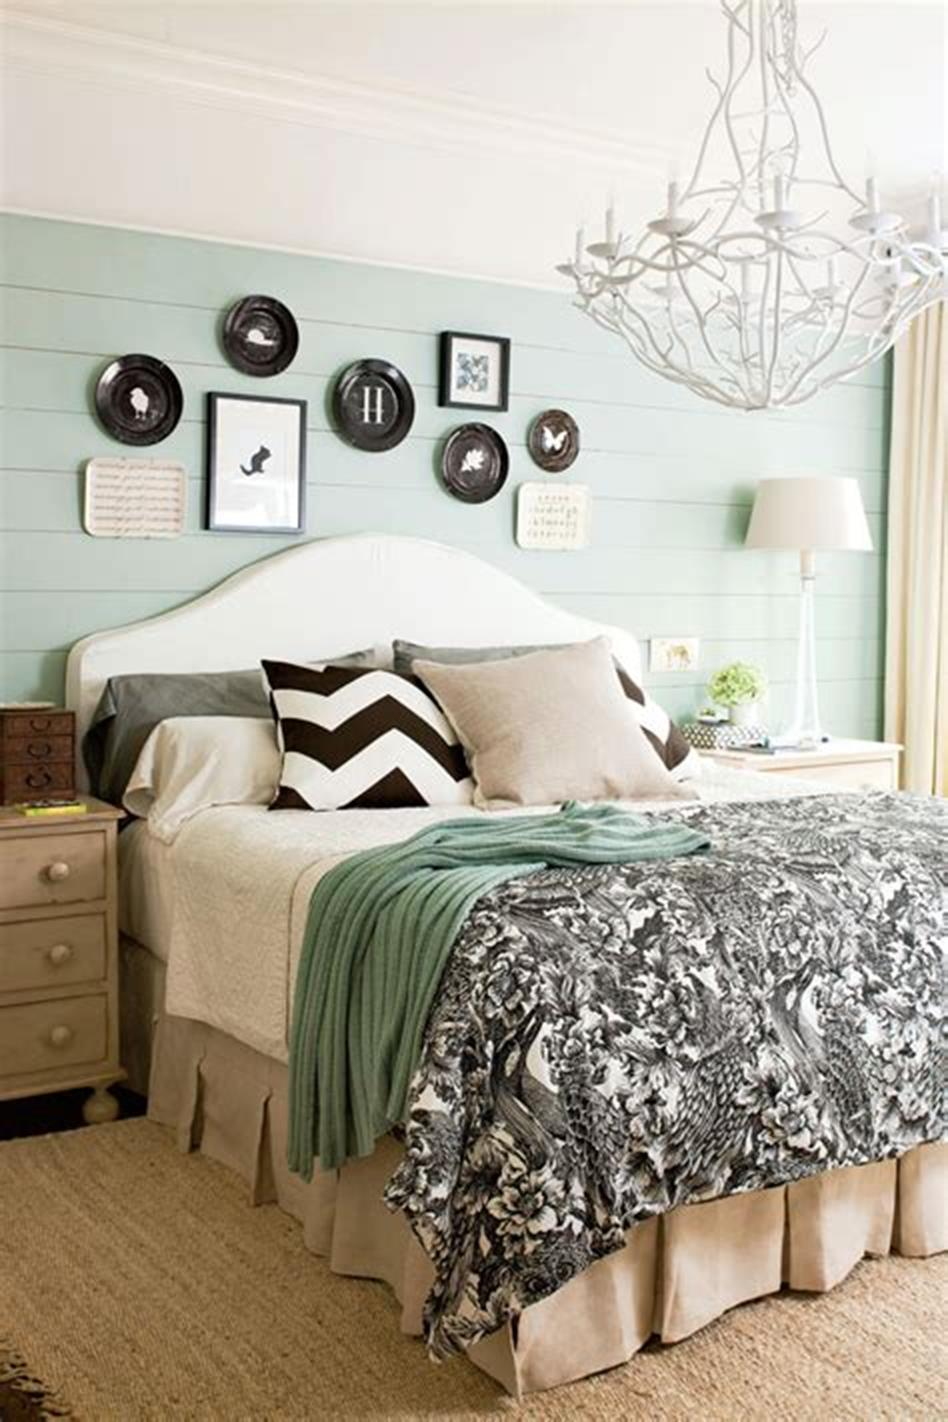 45 Beautiful Master Bedroom Bedding Ideas 2019 42 ...